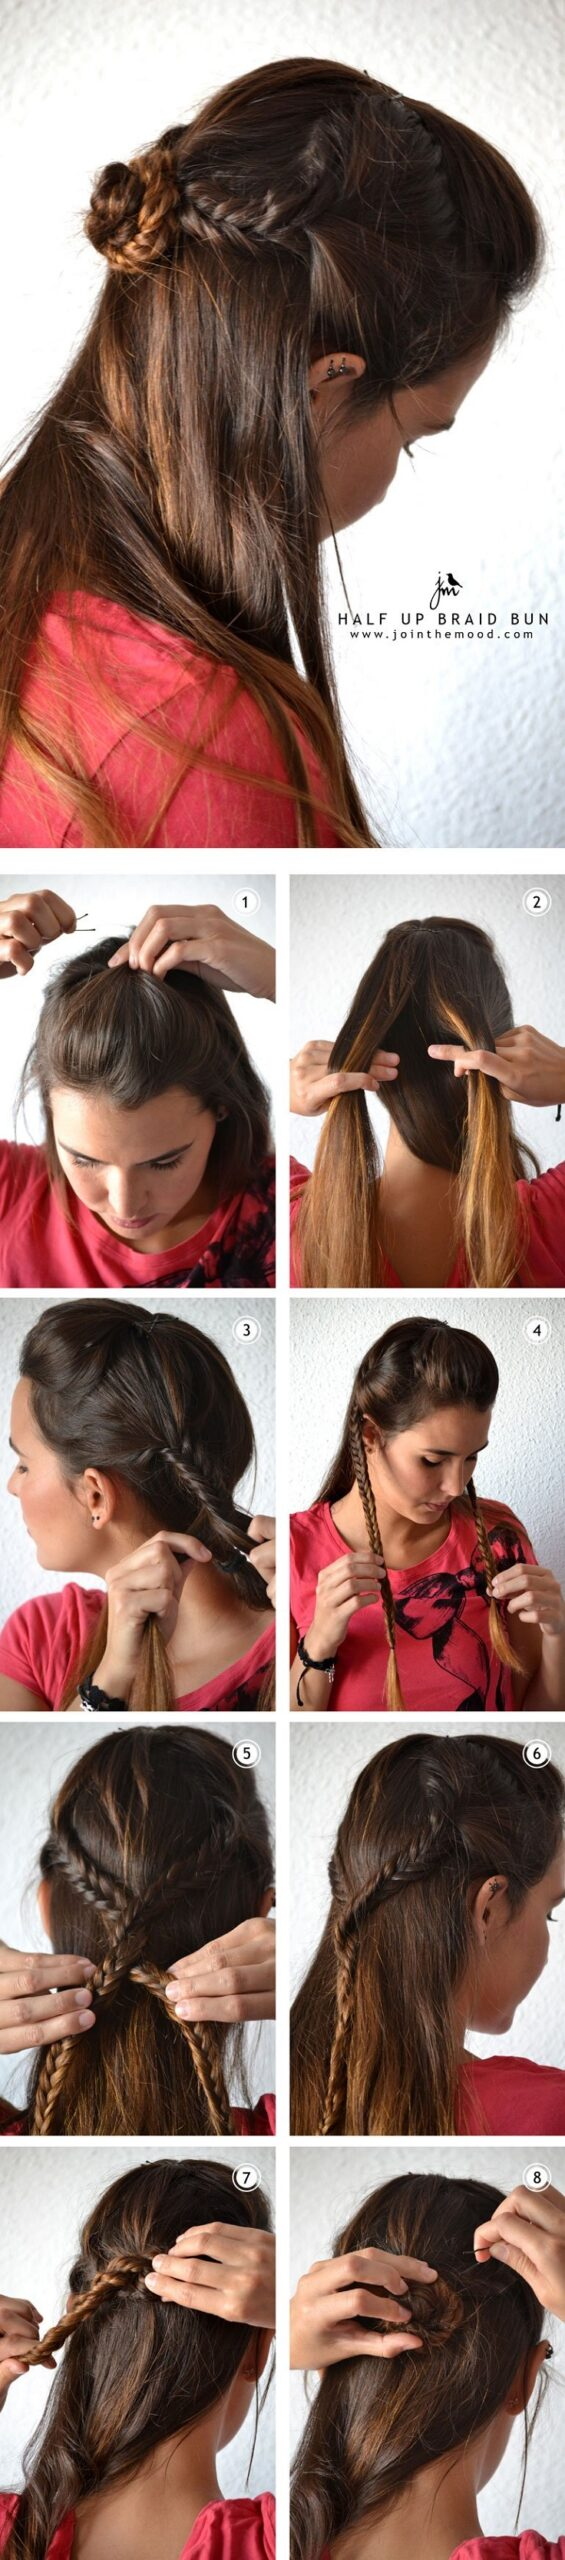 Top 10 Half Up Half Down Hair Tutorials You Must Have | Top Inspired